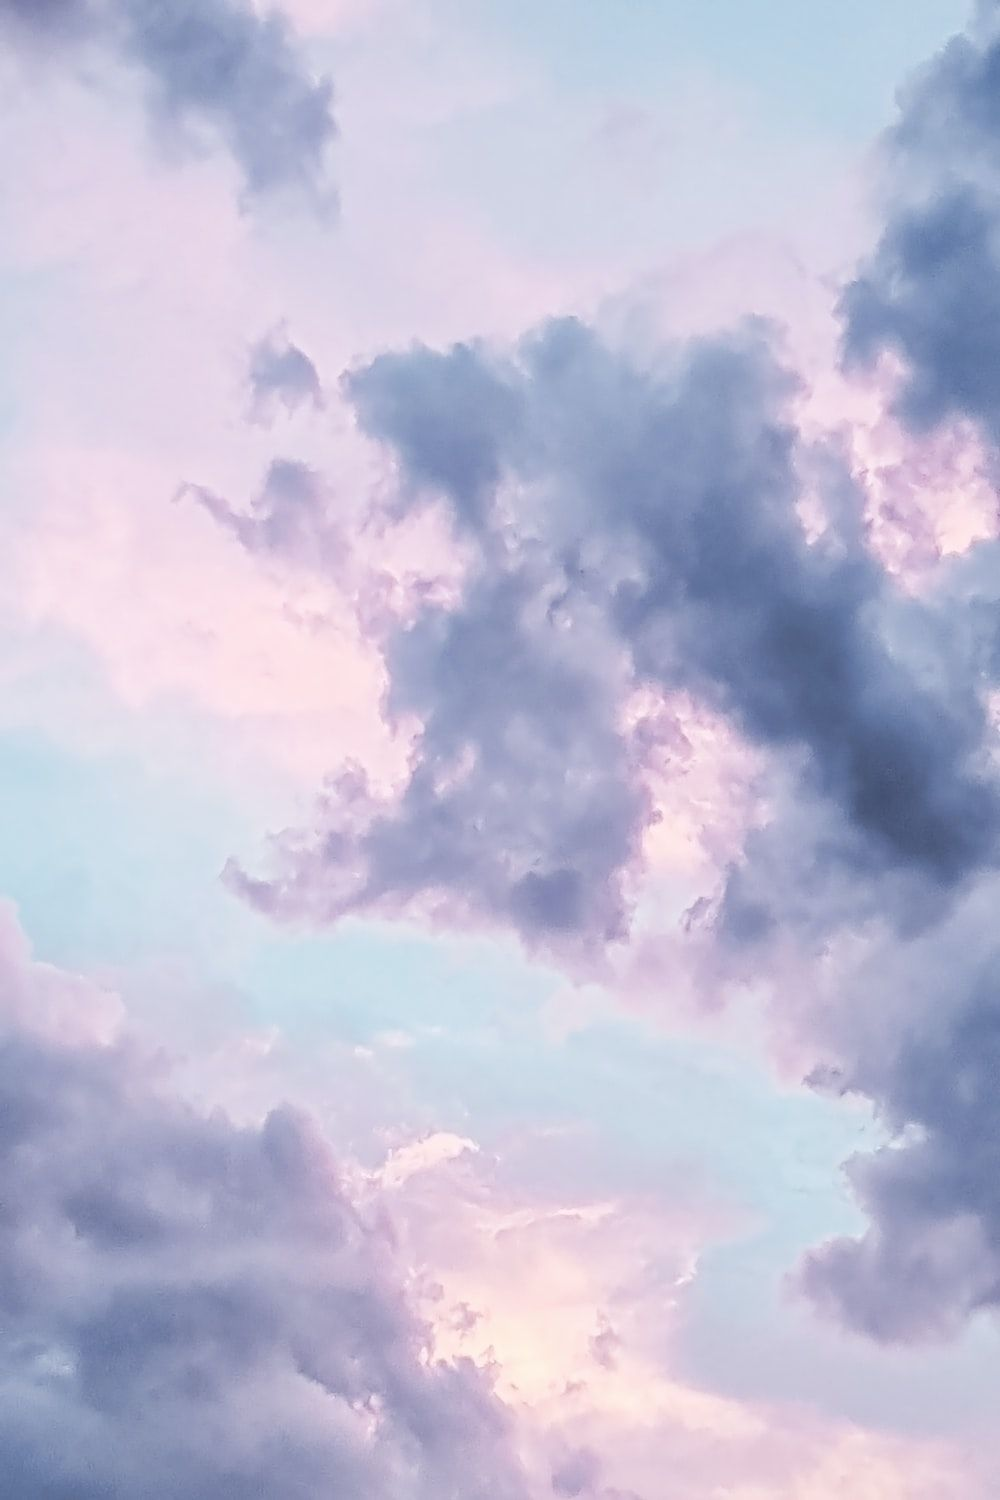 Abstract Pastel Clouds Wallpapers Top Free Abstract Pastel Clouds Backgrounds Wallpaperaccess